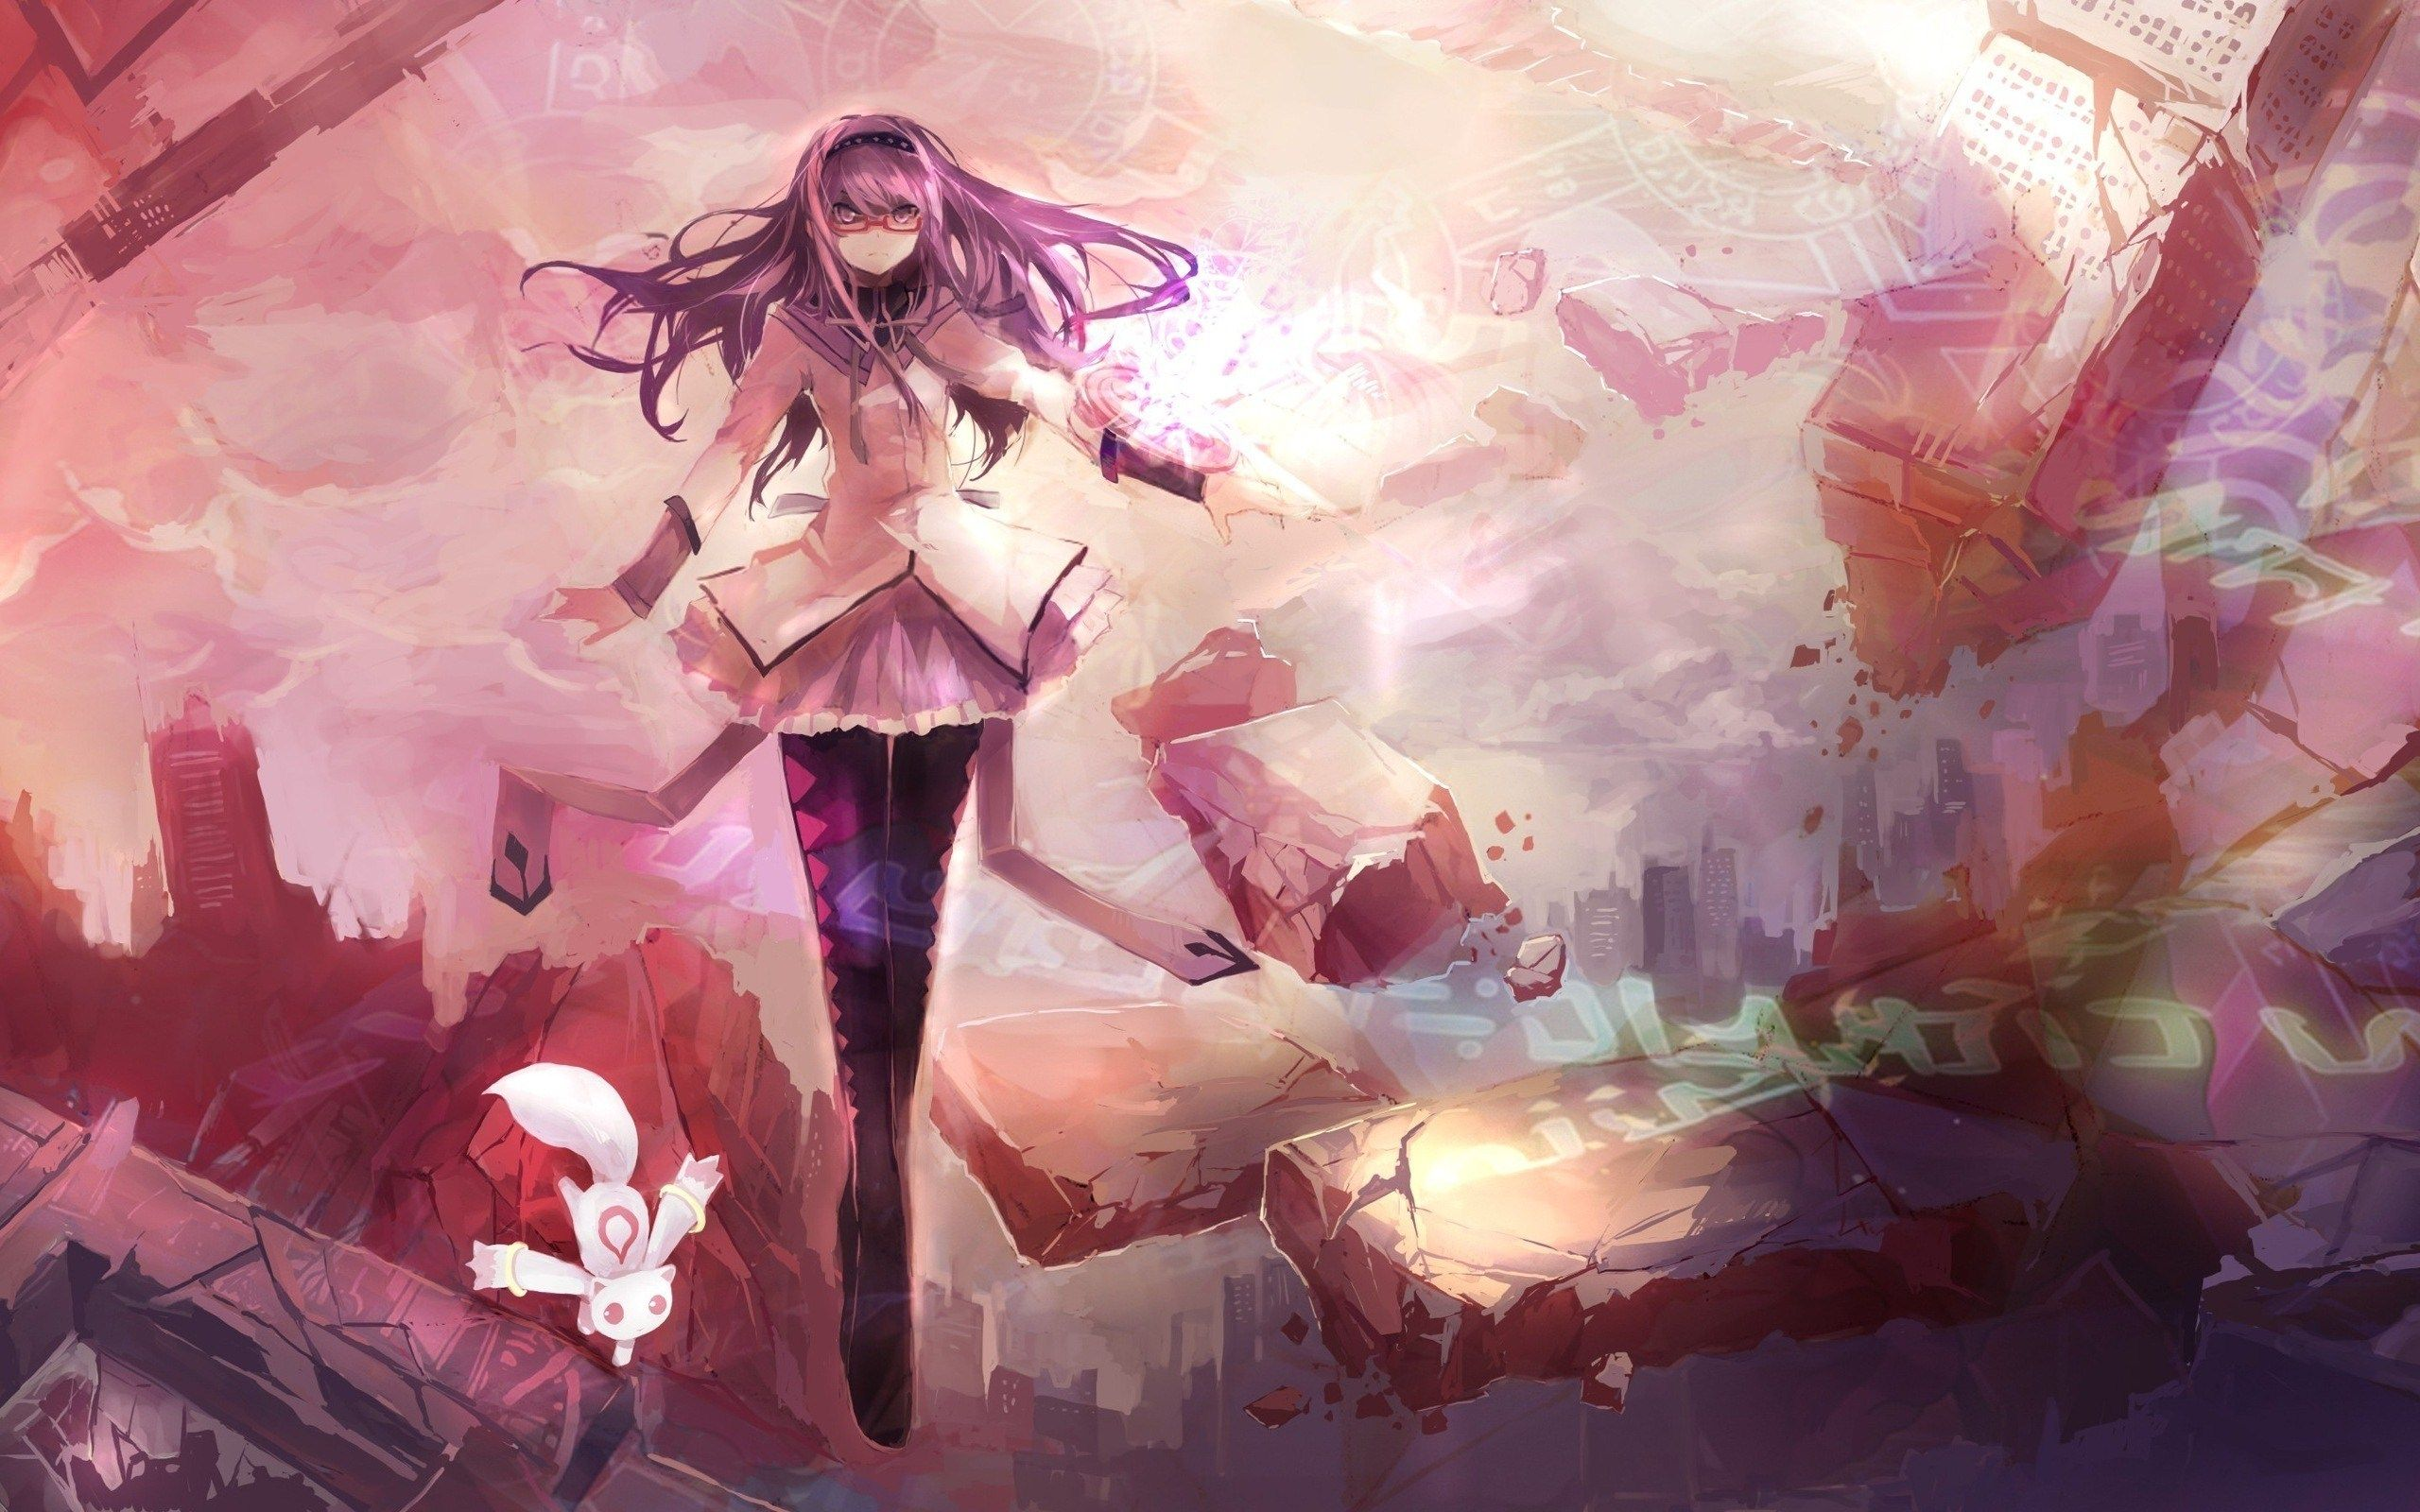 wowowow so pink, but soo cool ~~ <3 | anime art stuffs?? xd